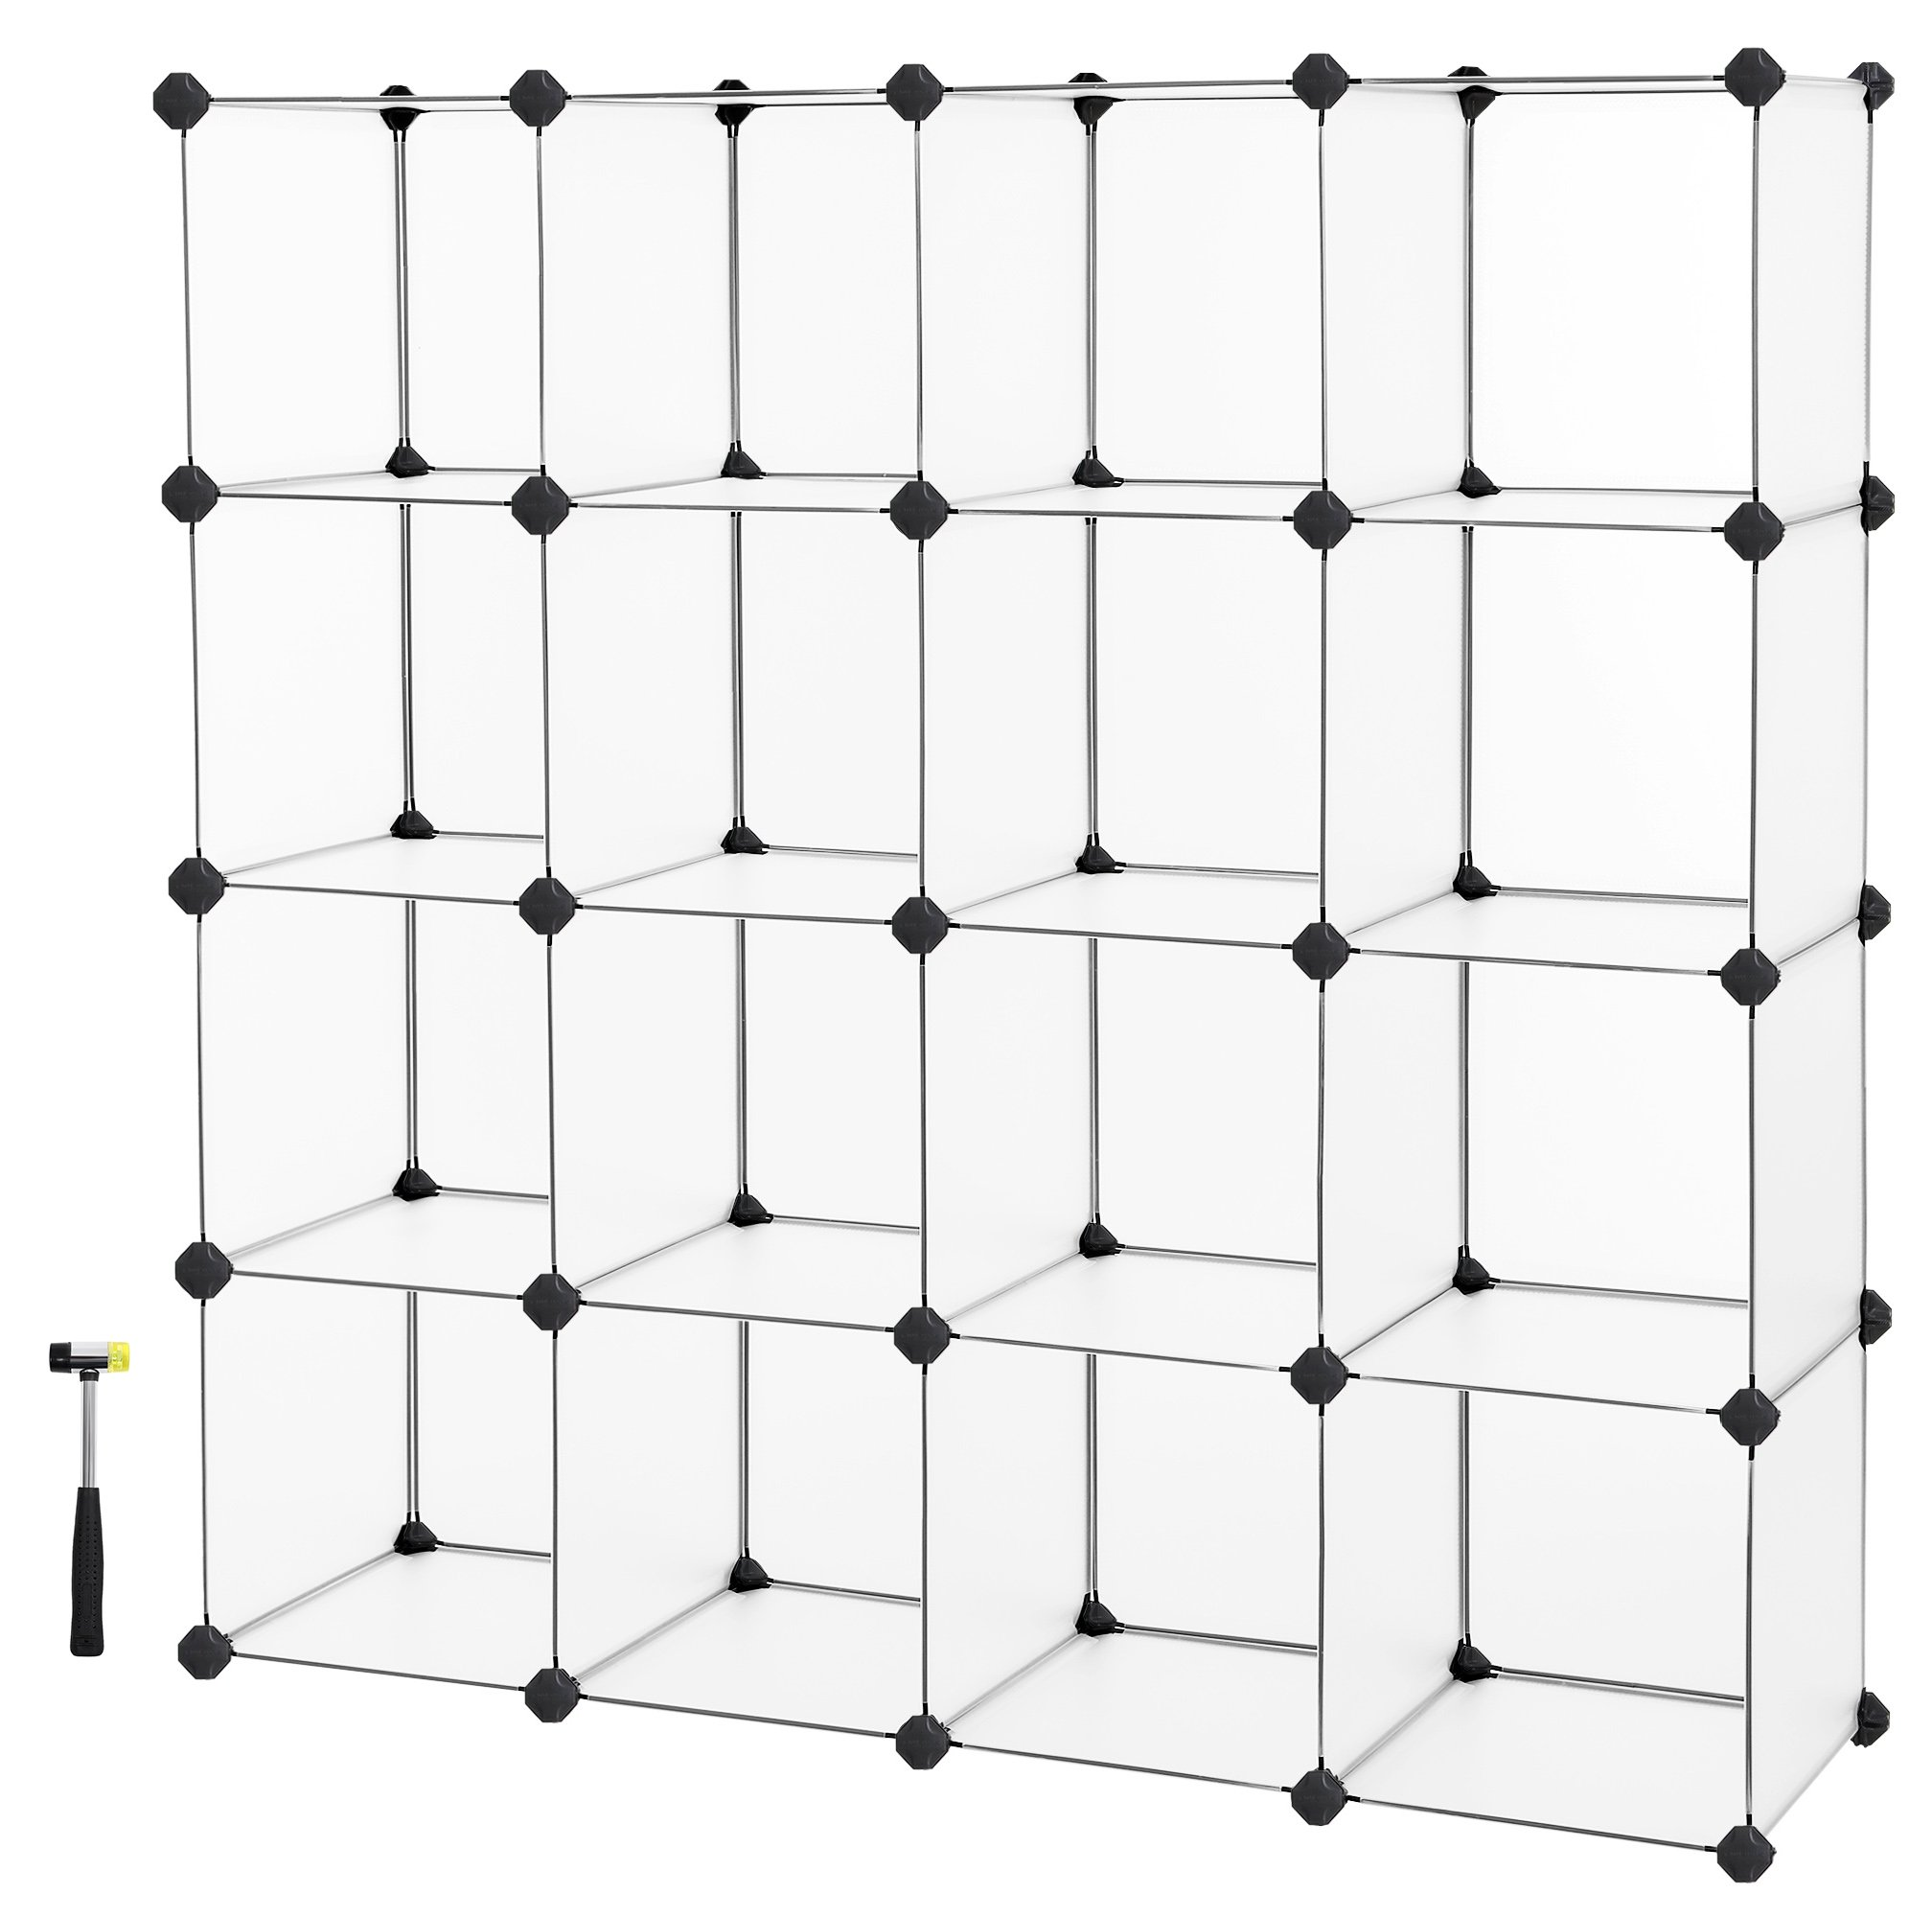 SONGMICS Cube Storage, Plastic Cube Organizer Units,DIY Modular Closet Cabinet, Bookcase Included Anti-Toppling Fittings and Rubber Hammer White Translucent 16-Cube ULPC44L